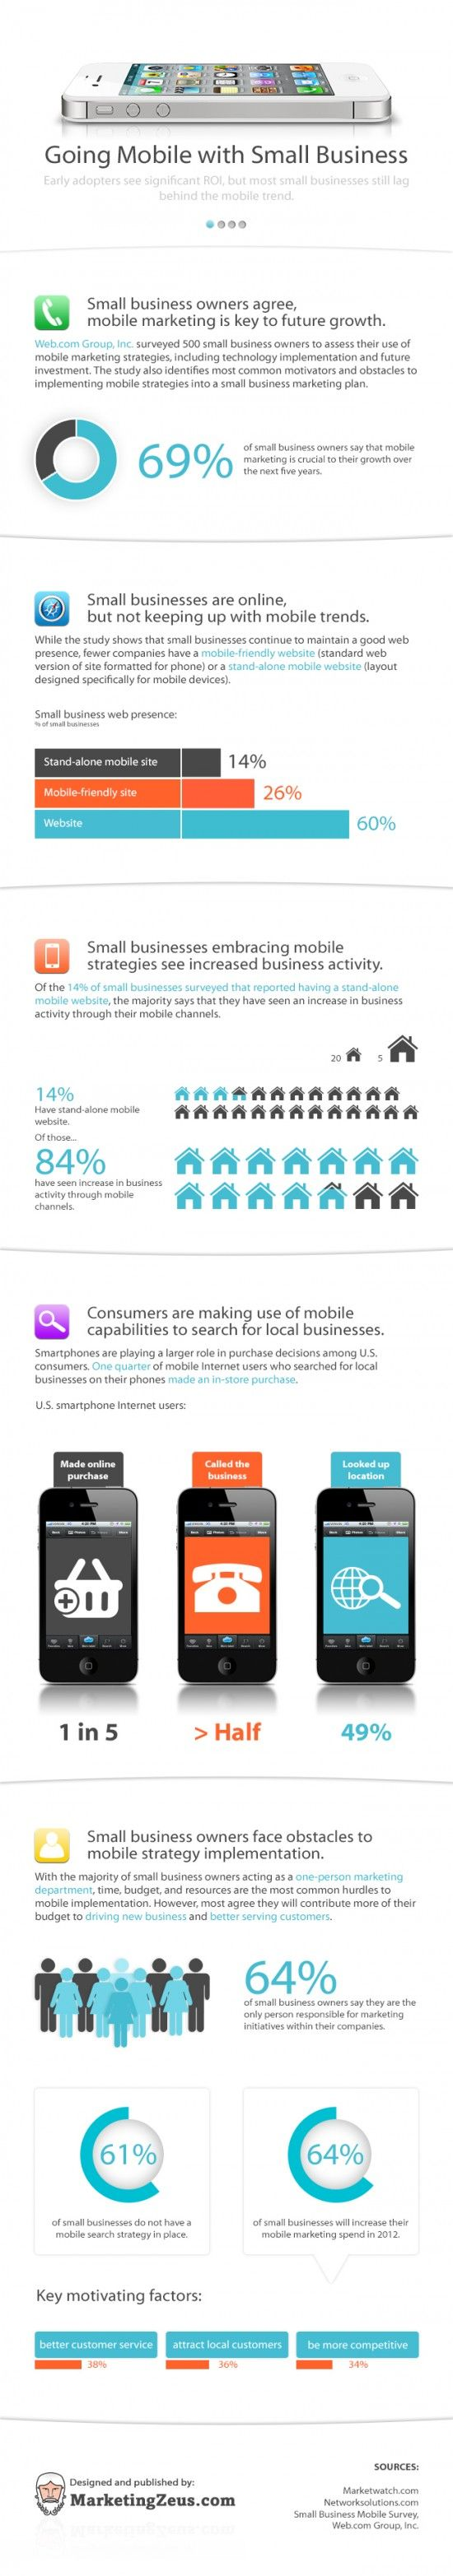 Are You Falling Behind When it Comes to Mobile? | Business 2 Community